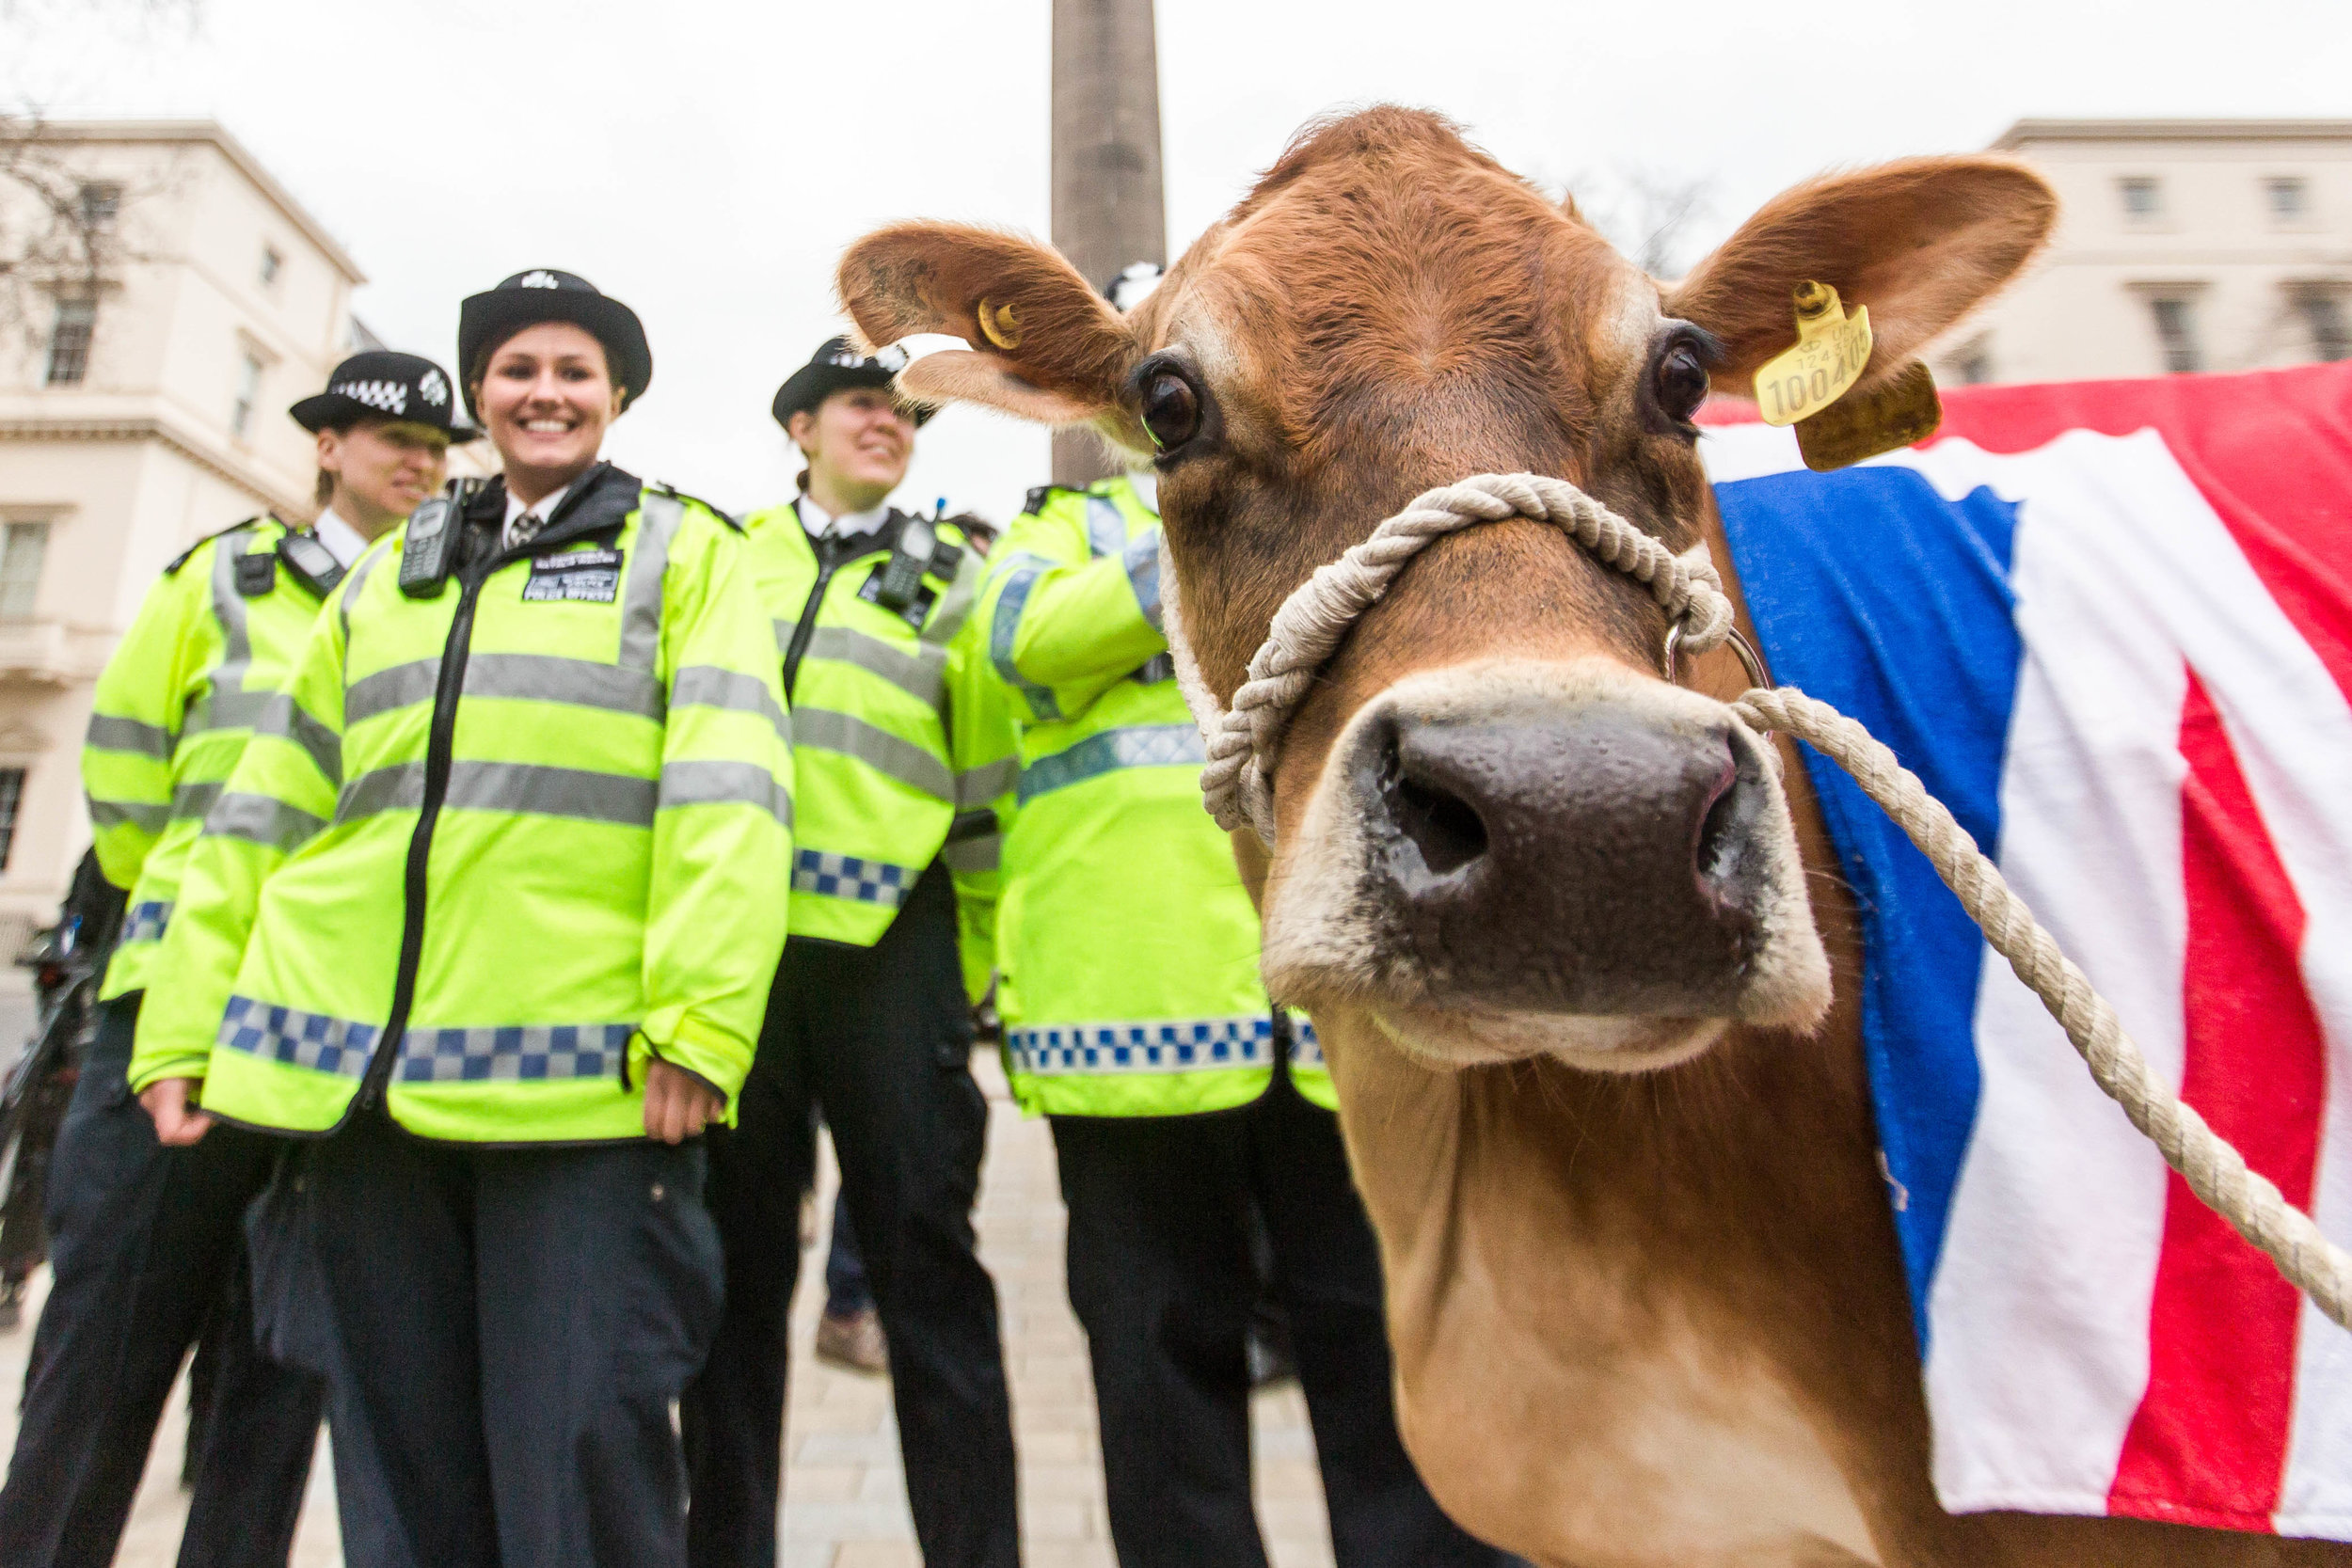 Farmers parade livestock through central London in a bid to increase milk prices. London, England - March 23 2016.